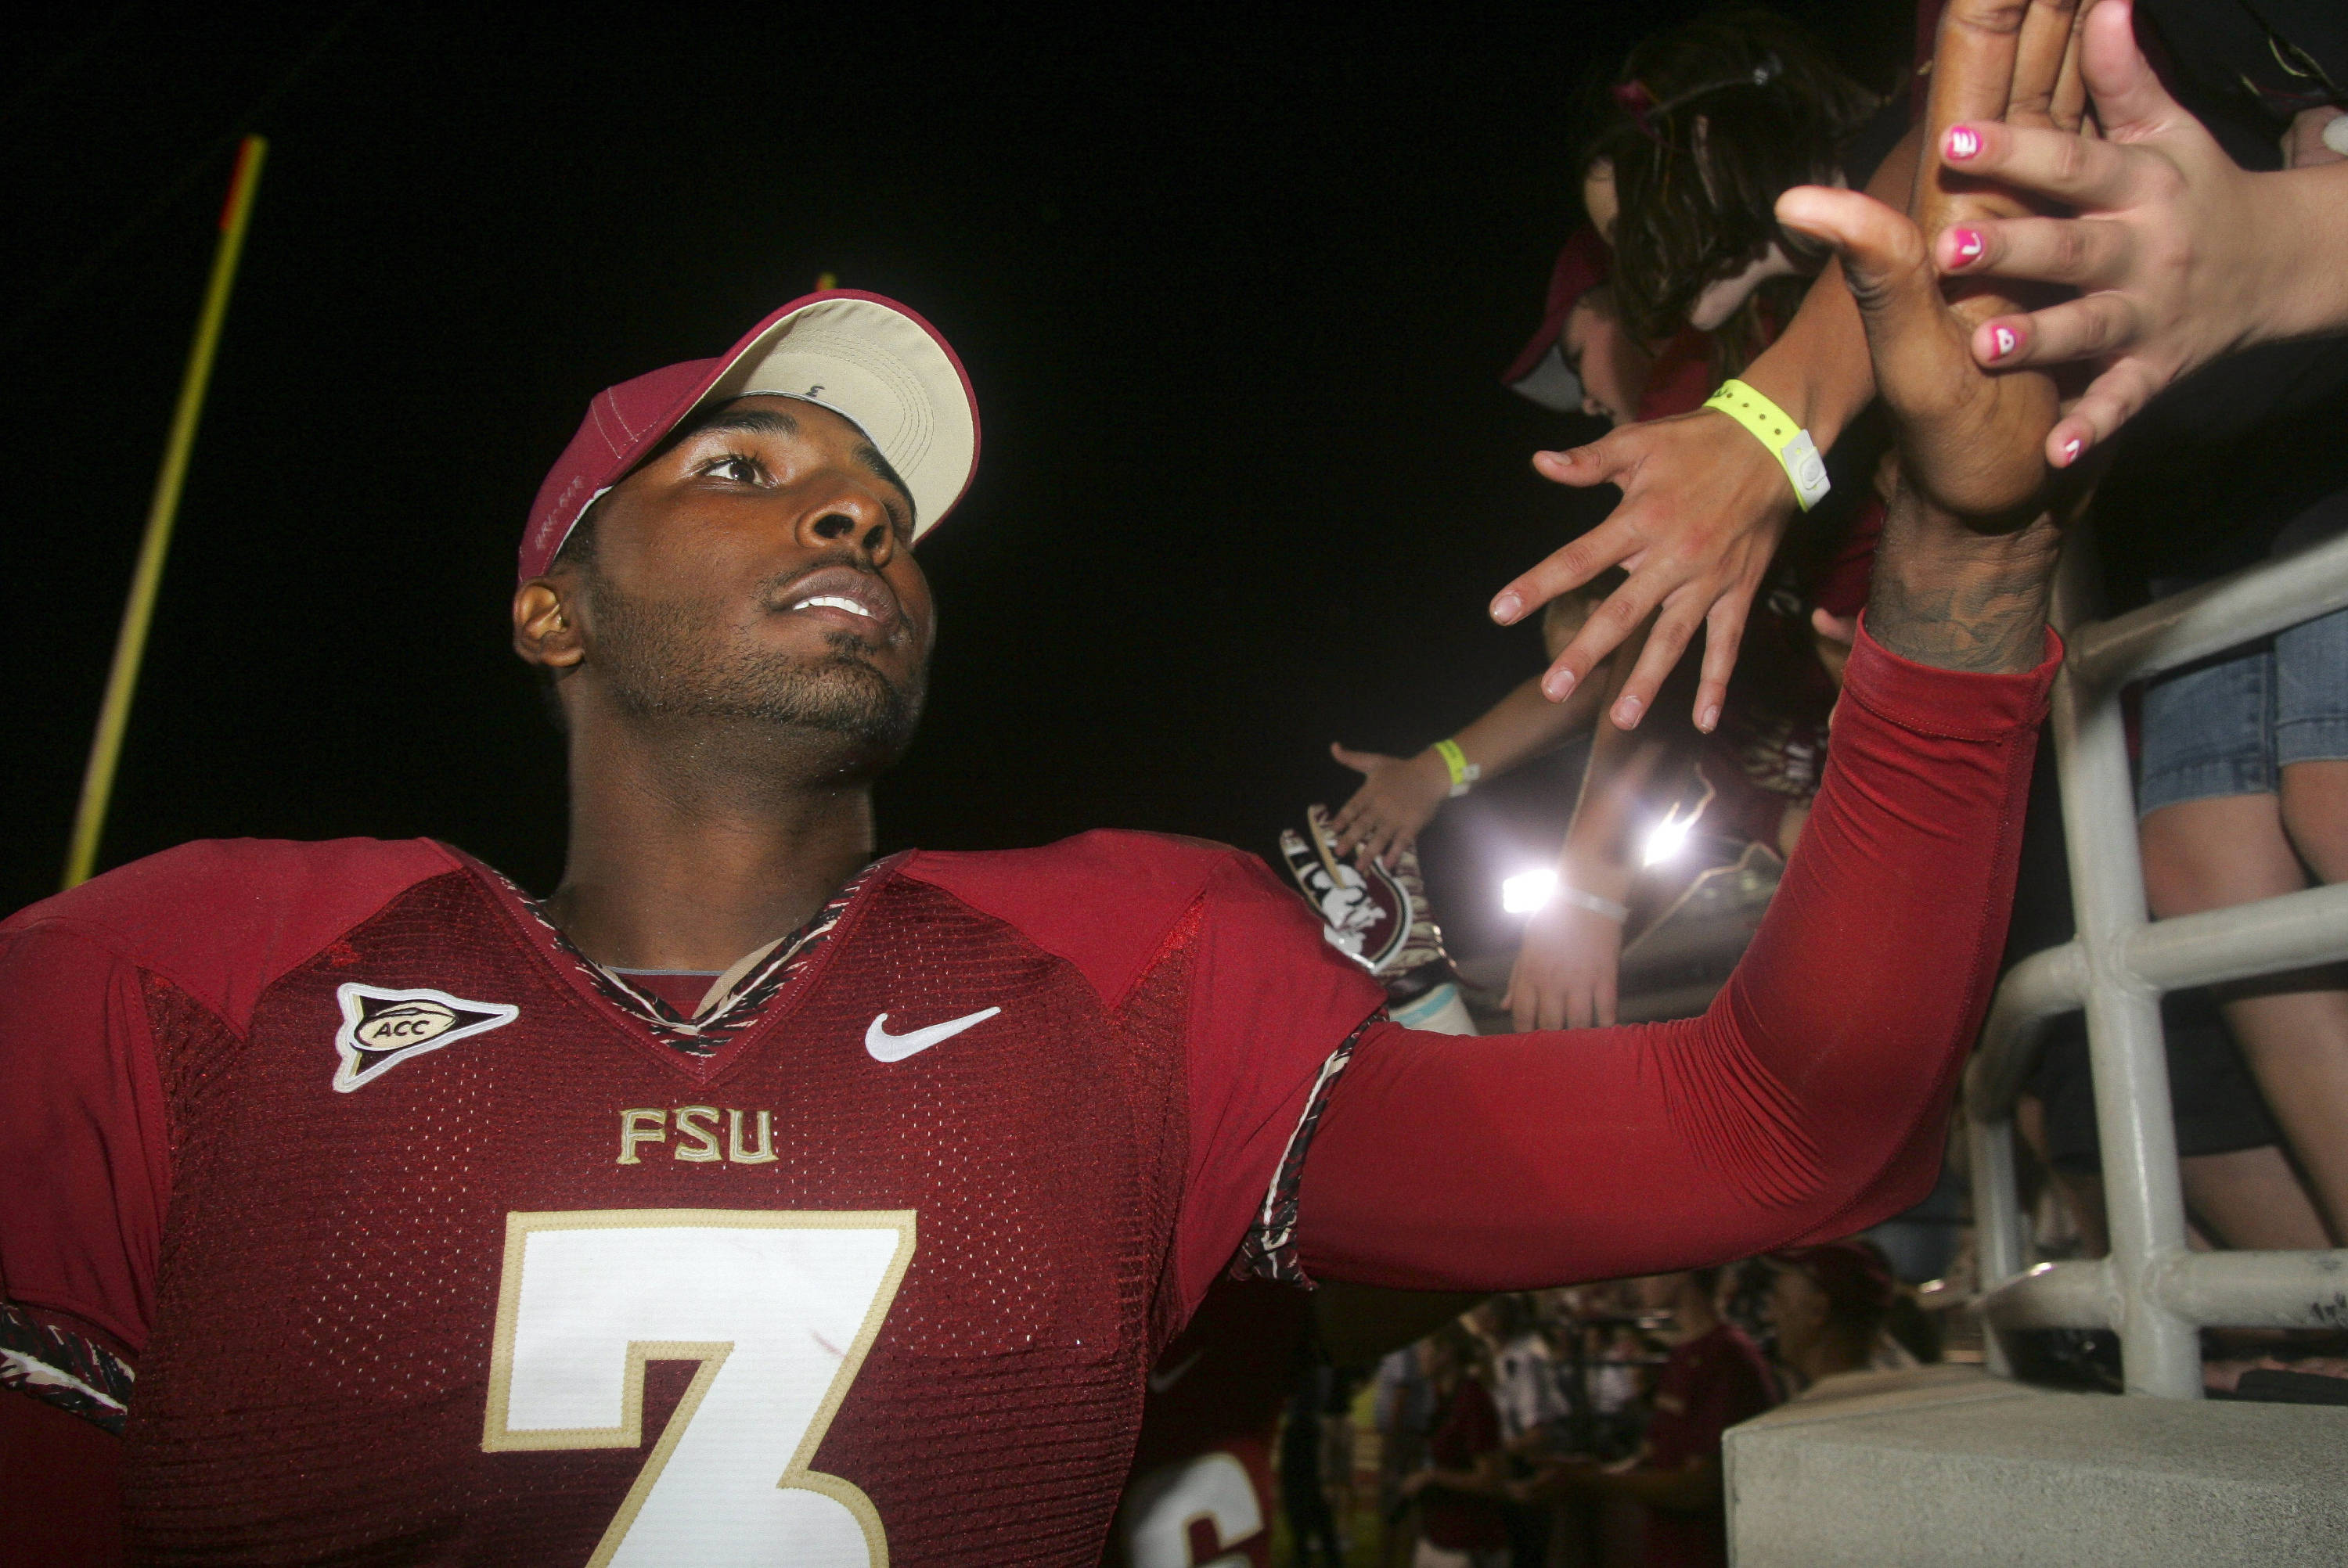 Florida State quarterback E.J. Manuel (3) celebrates with a fan after their 69-3 win over Murray State. (AP Photo/Phil Sears)